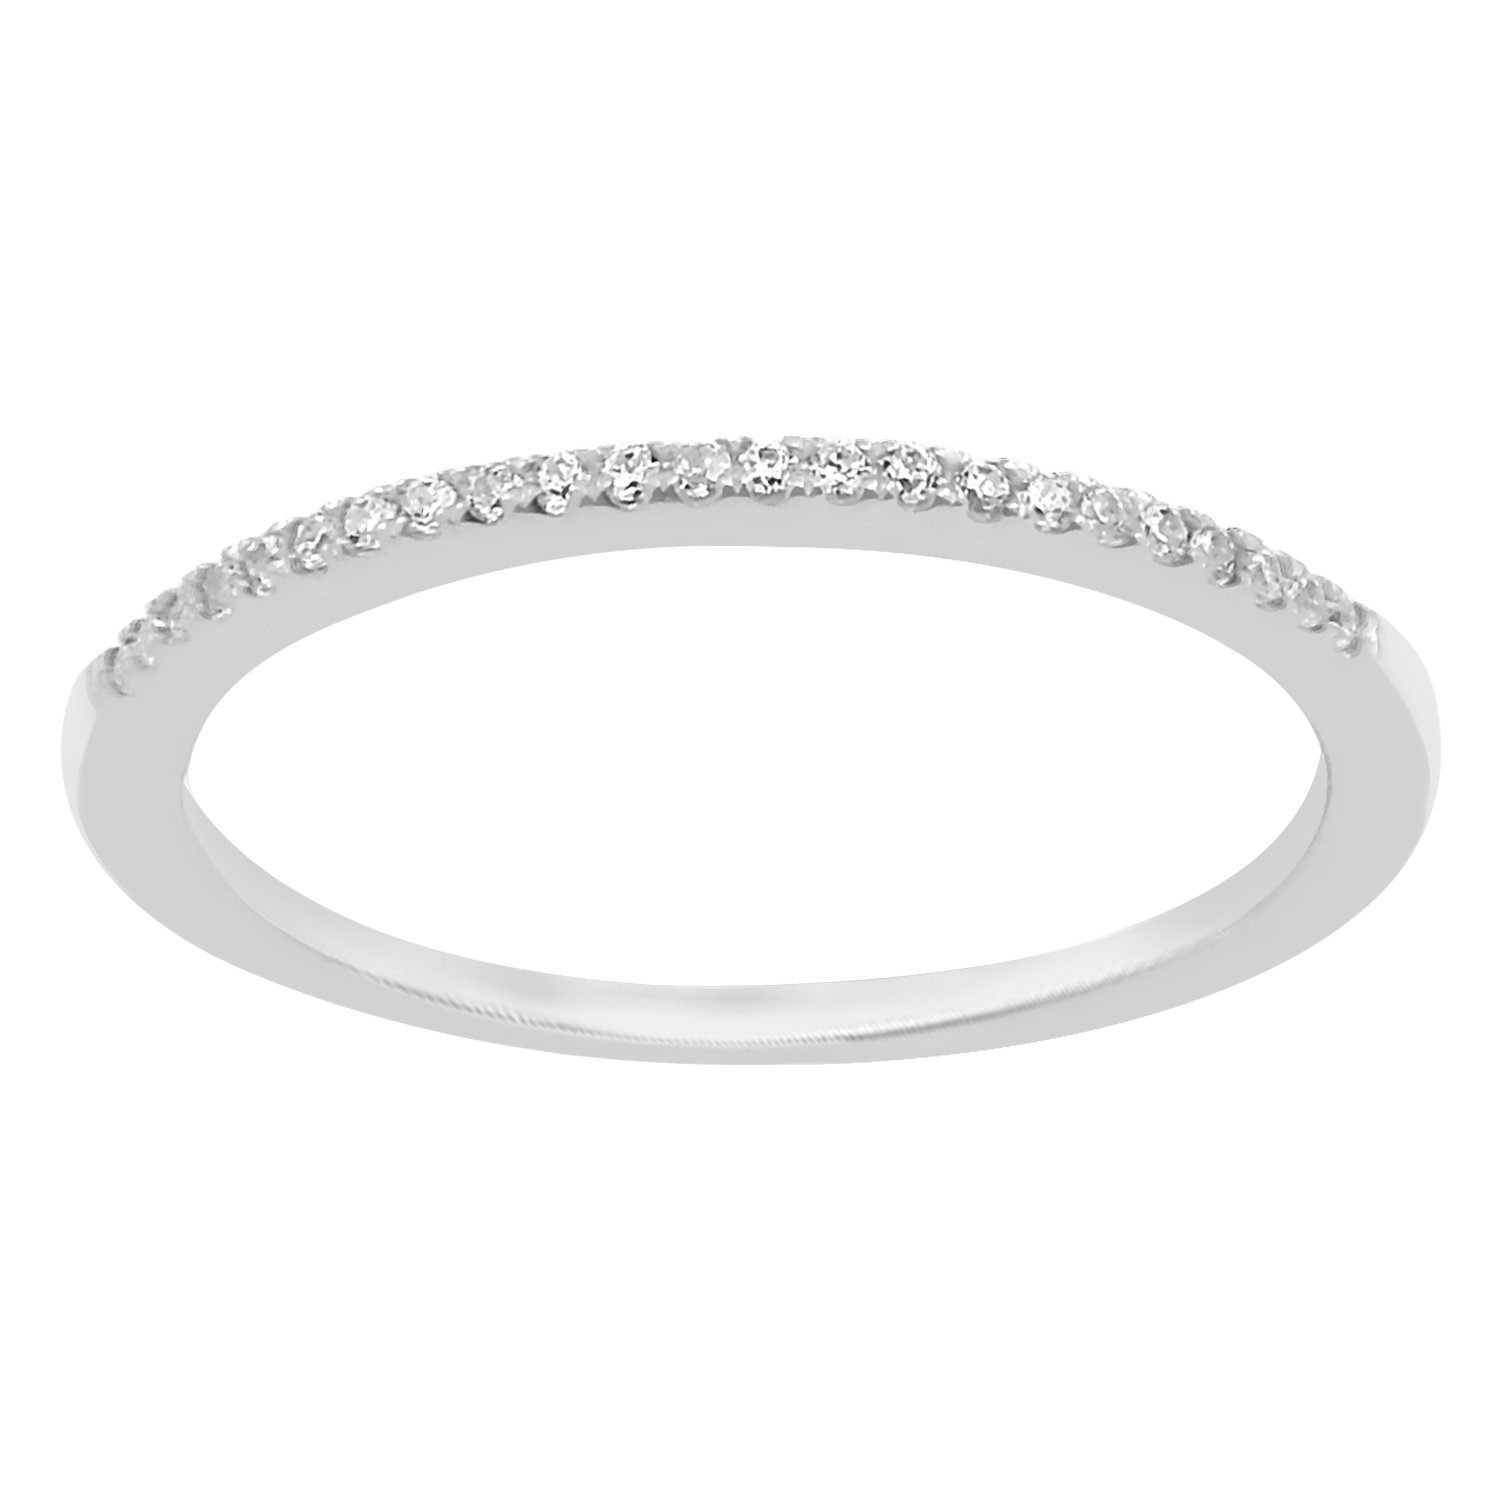 0.08 cttw 14k White Gold Round Diamond Ladies Dainty Anniversary Wedding Band Stackable Ring